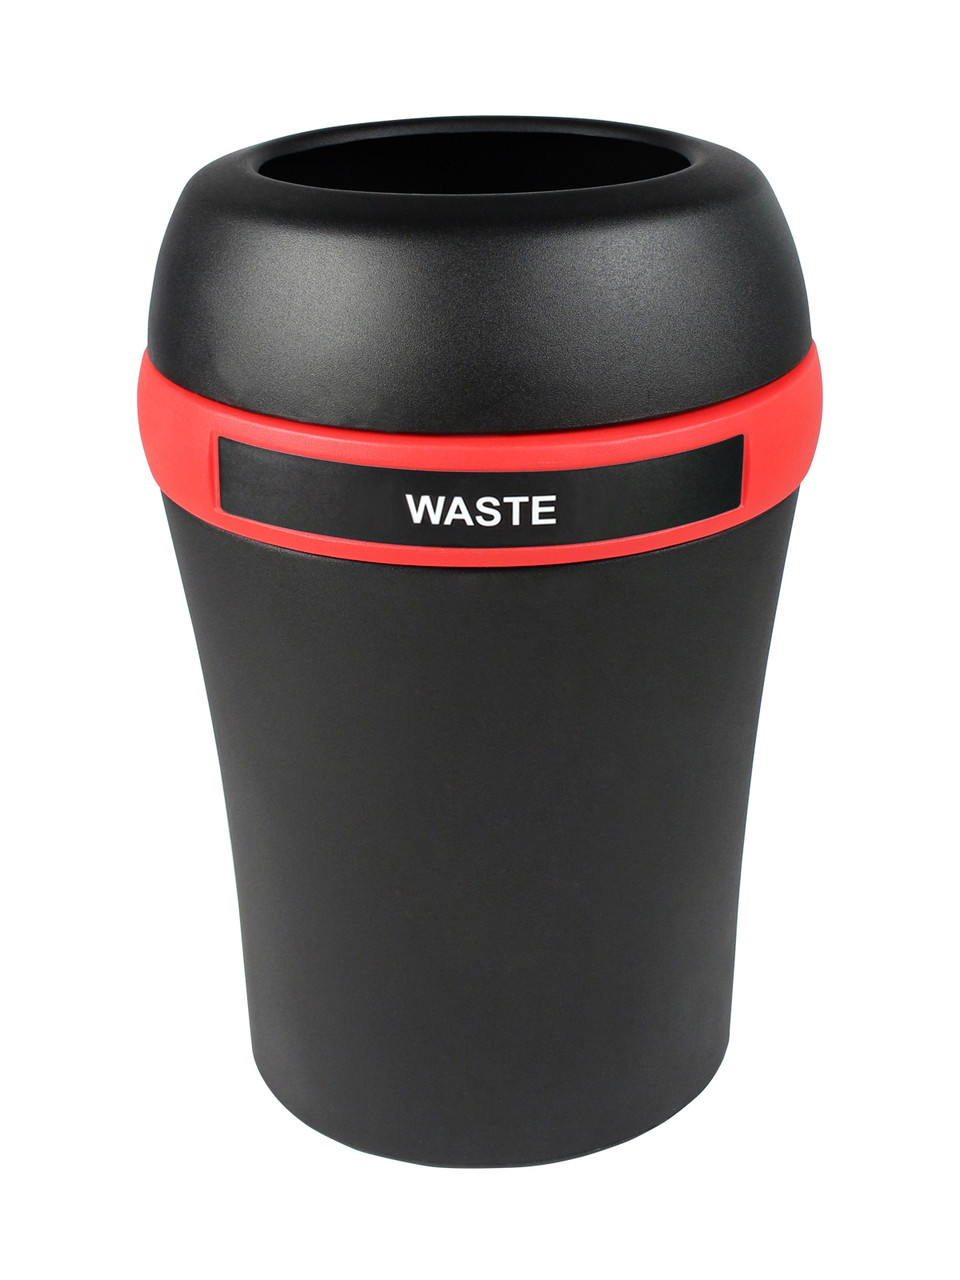 37.5 Gallon Infinite Elite Trash Can 100905 (Waste)